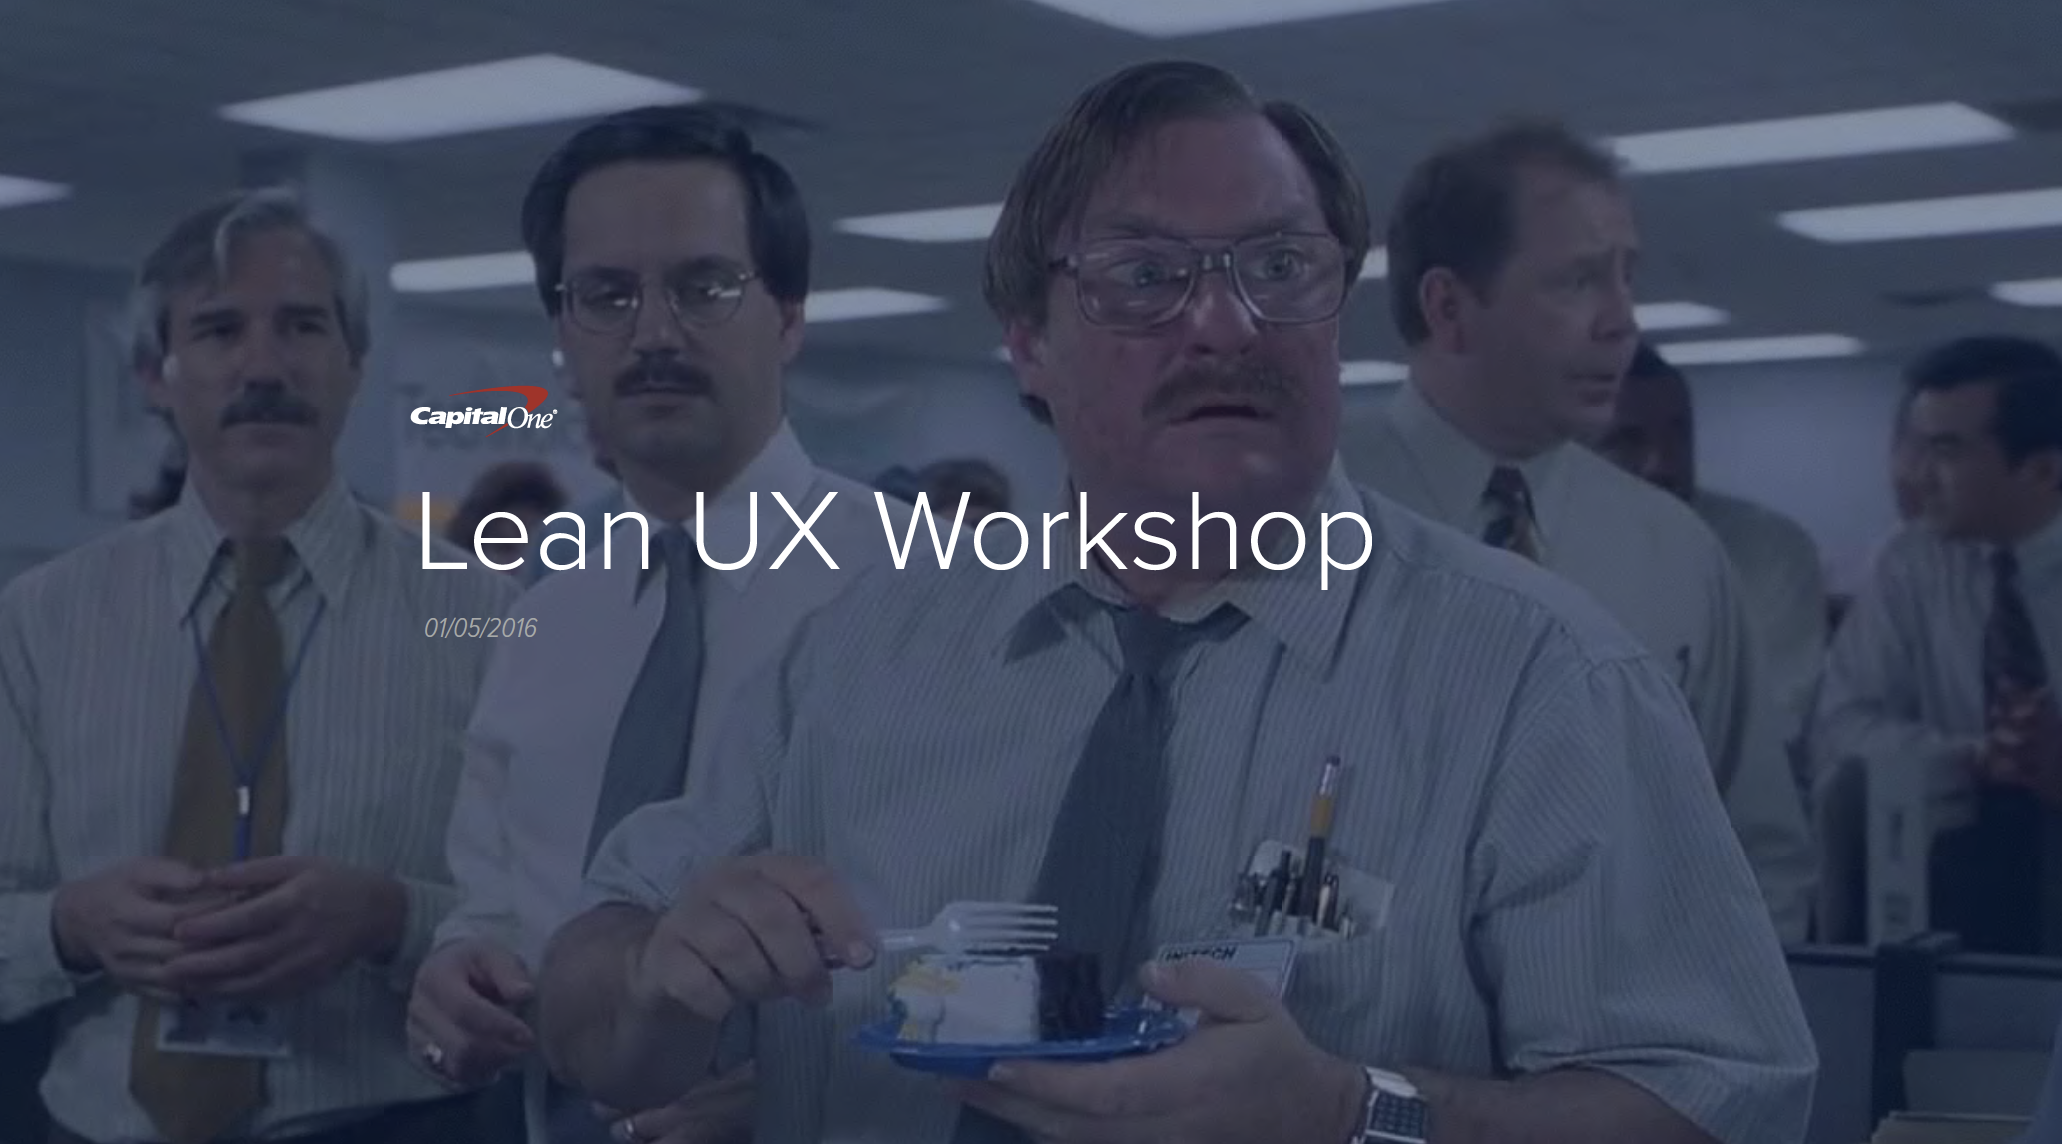 LEAN UX FRAMEWORK  This is a framework I have been developing over the years. It is inspired by lean UX processes.I adjust it as is needed since every situation is unique. It has proven to be a framework that is flexible and gets results. It is a great liaison between research and agile product teams.    Download Deep Dive PDF